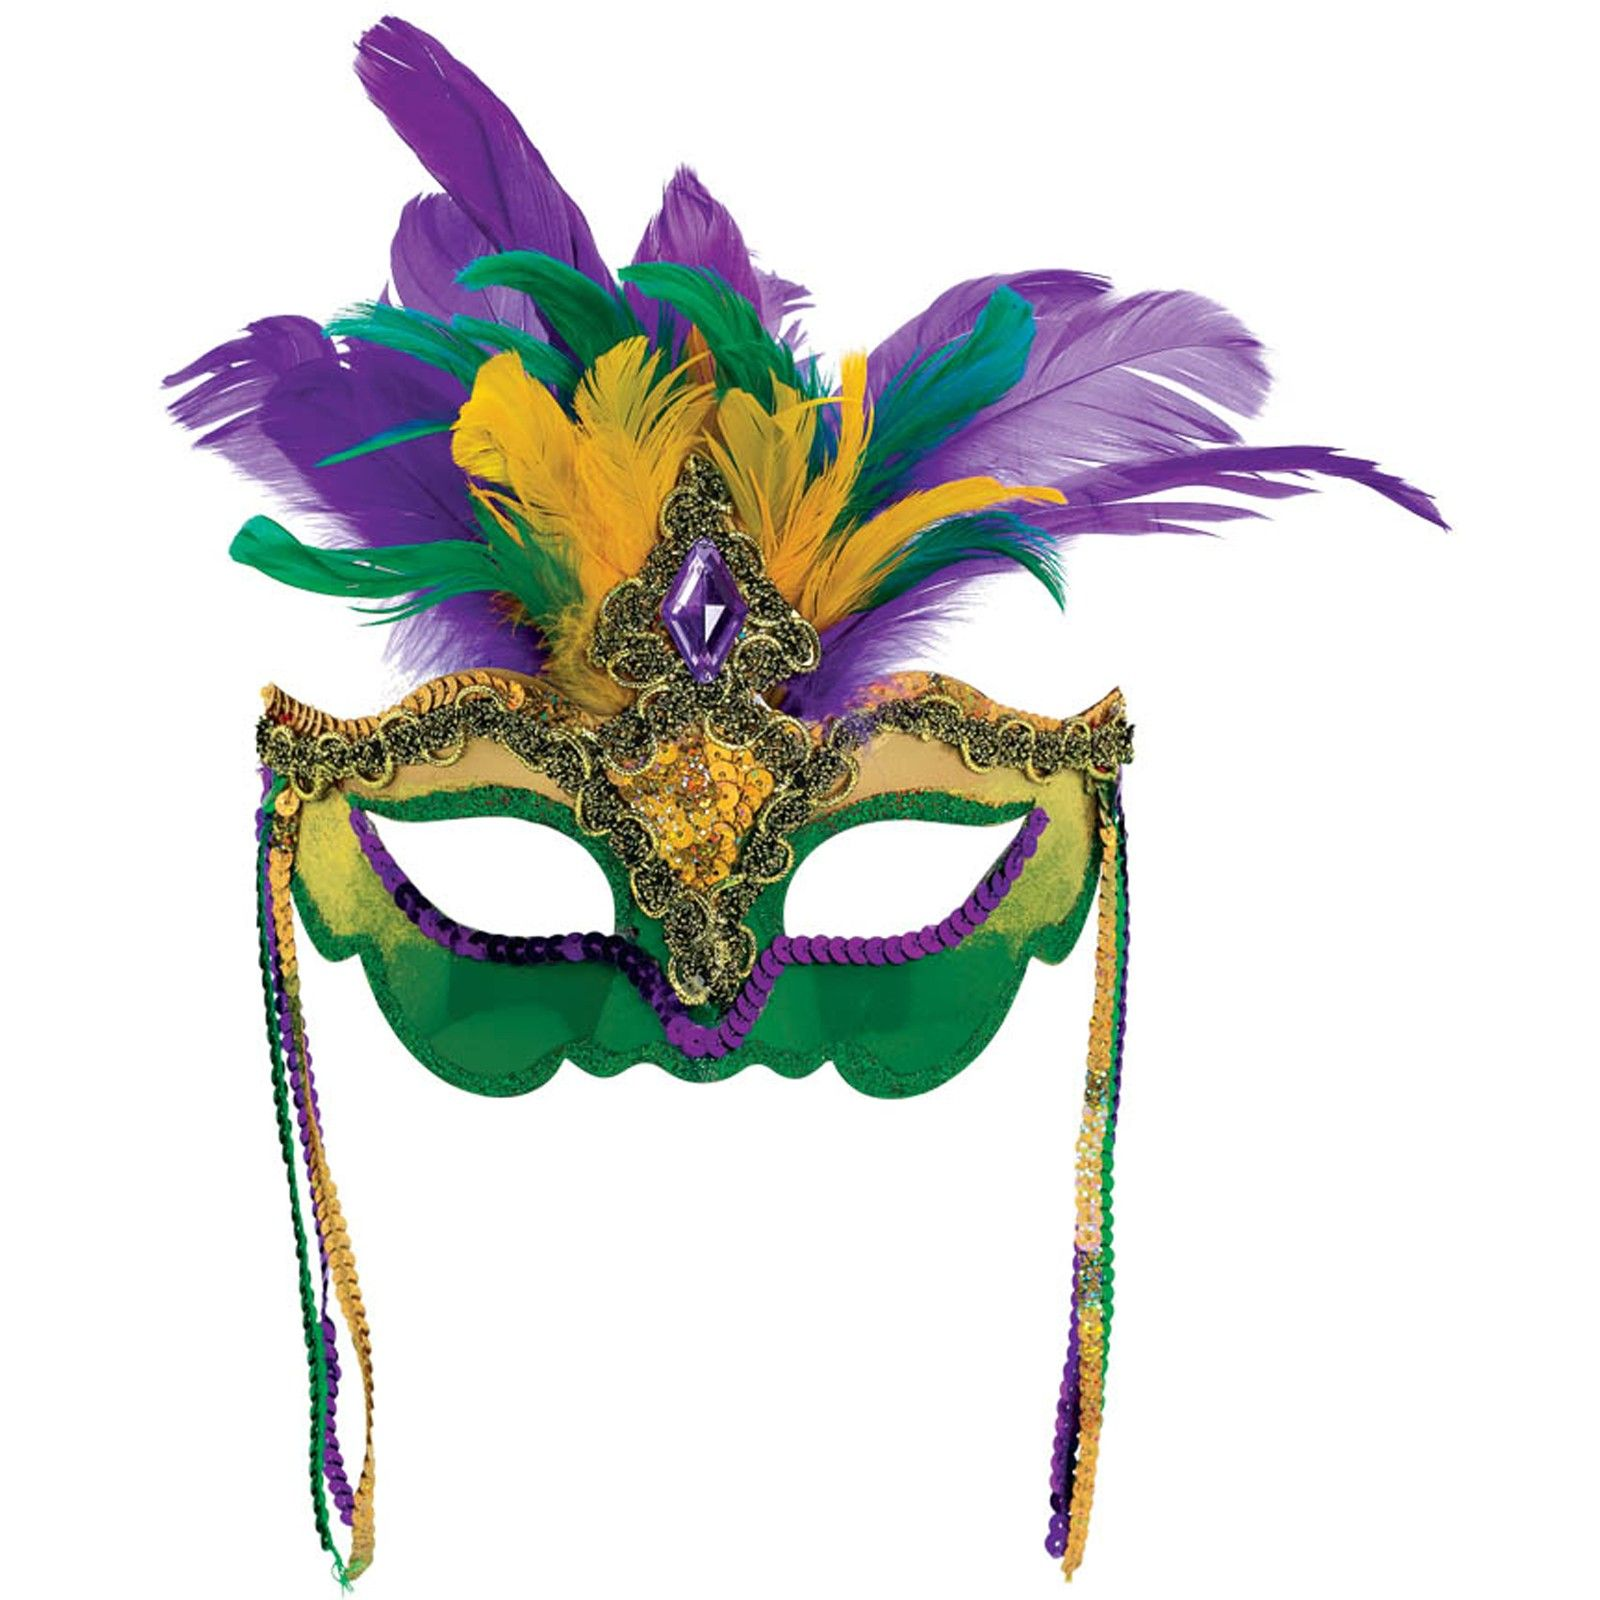 Purple green and gold mardi gras mask clipart clipart free library Mardi gras mas... Mardi Gras Mask Logo Mardi gras clipart ... clipart free library